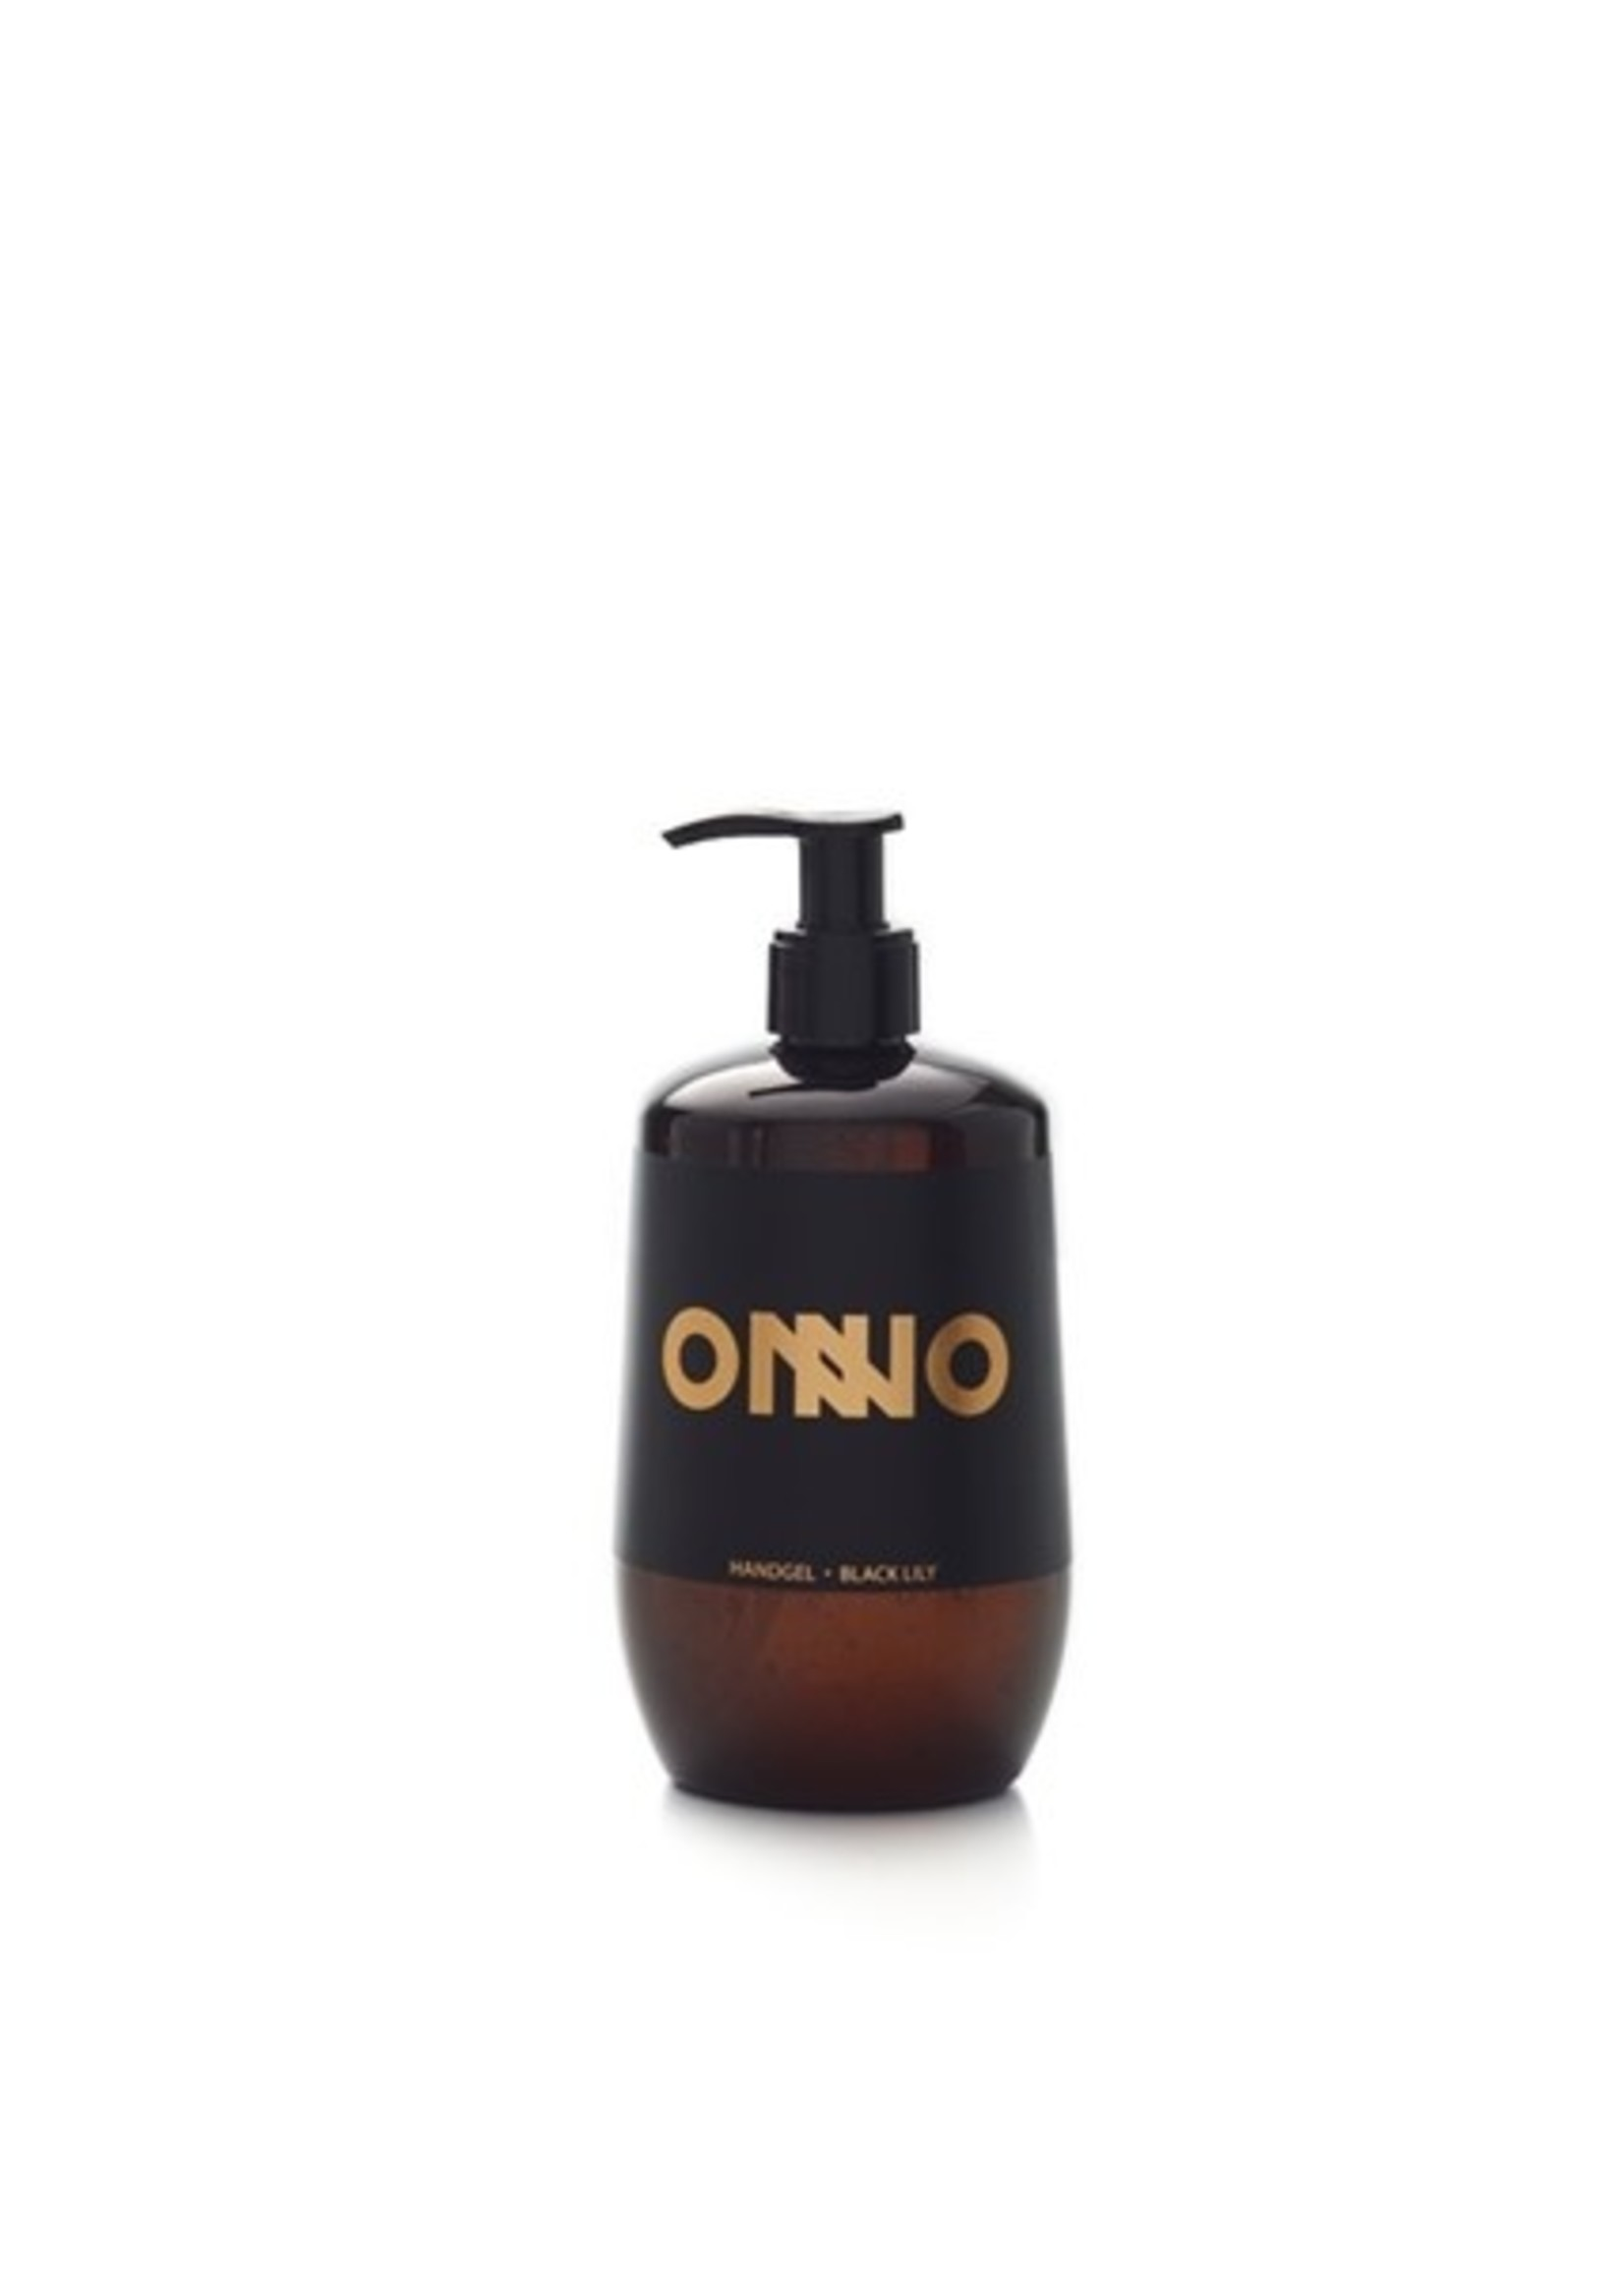 ONNO COLLECTION Onno Hand & Body handgel Black Lily